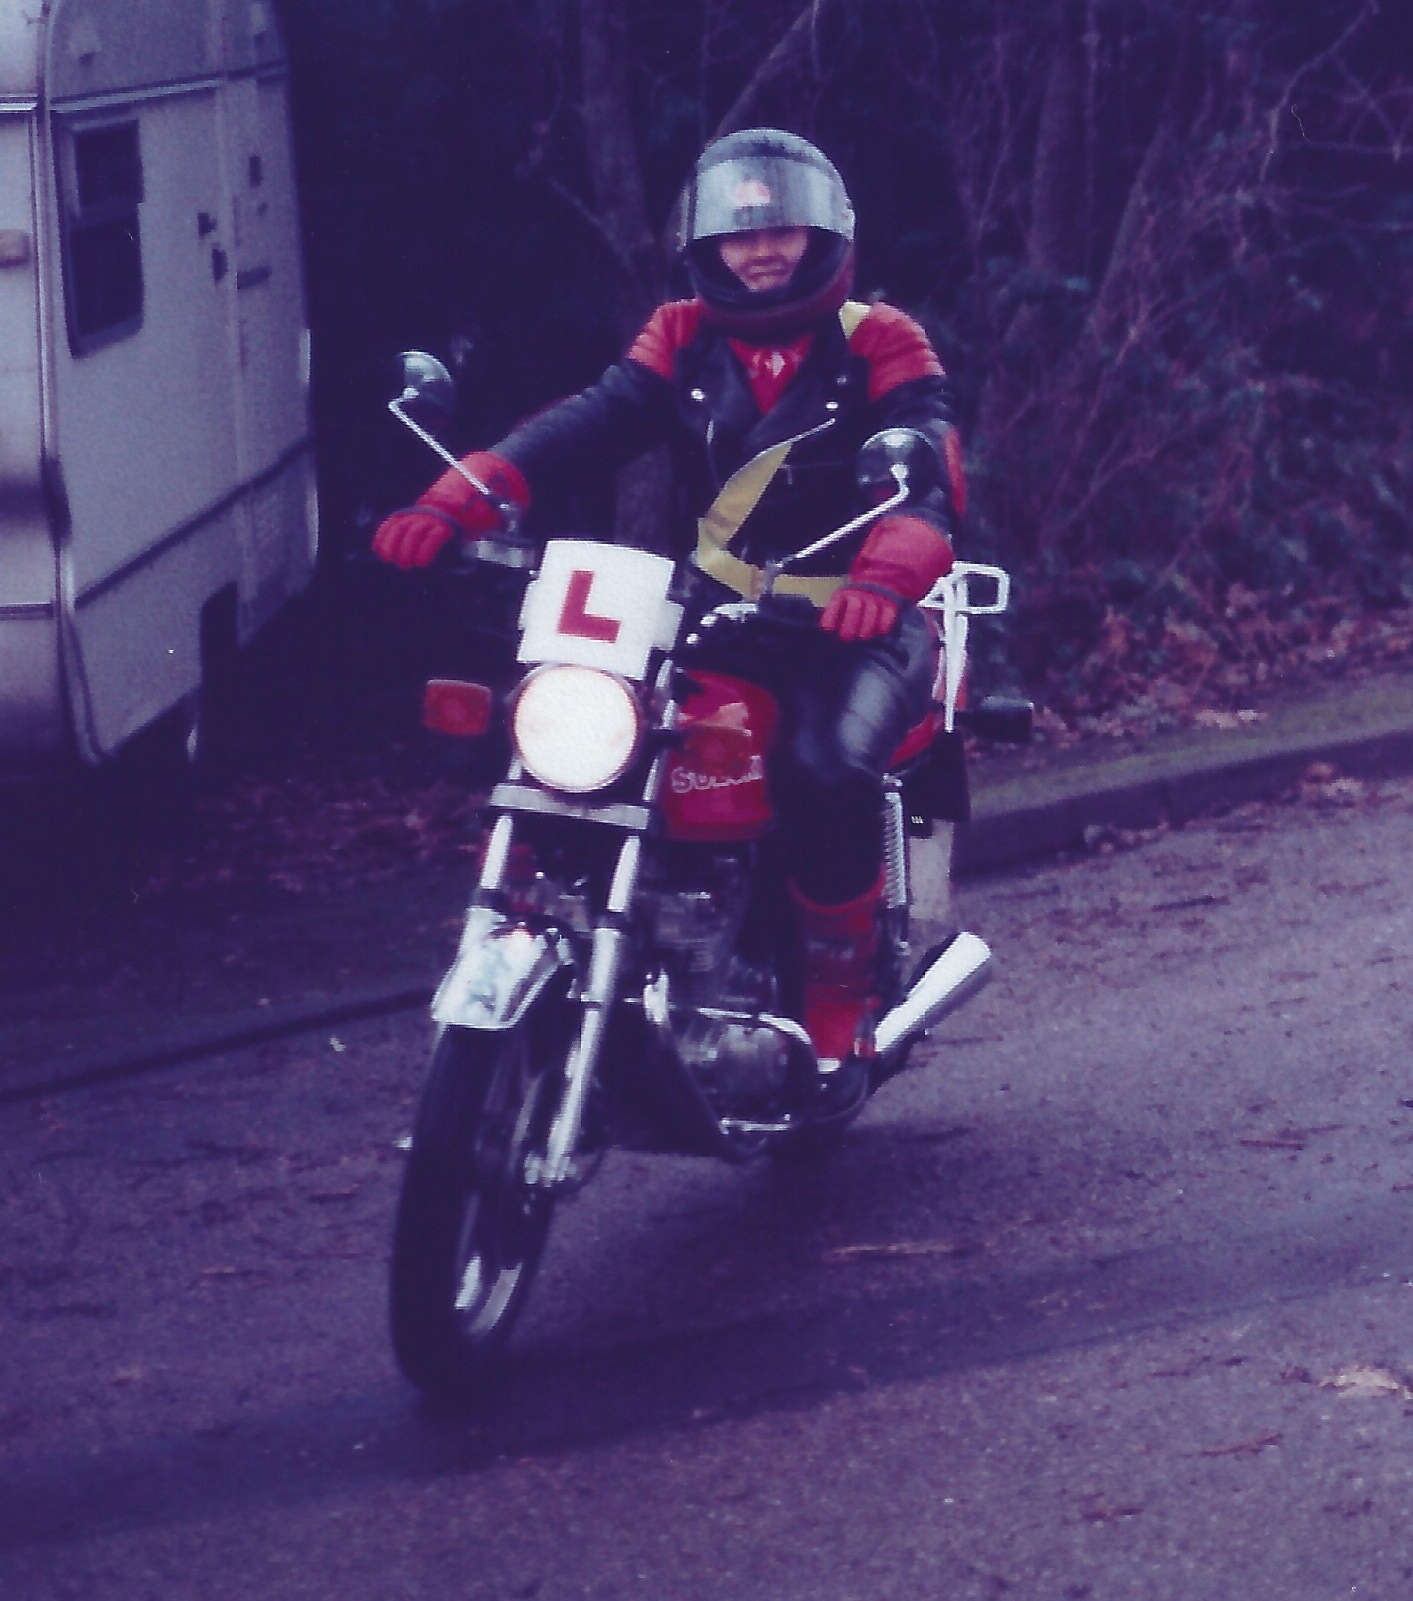 A front three quarters view of Lynda Poynter, riding her red Suzuki GSX250 around a tight roundabout with a partially obscured caravan in the background. Lynda is wearing all her matching motorcycle protective clothing including black and red leather jacket, black leather trousers and black and red moto-cross style boots and a fluorescent yellow body sash